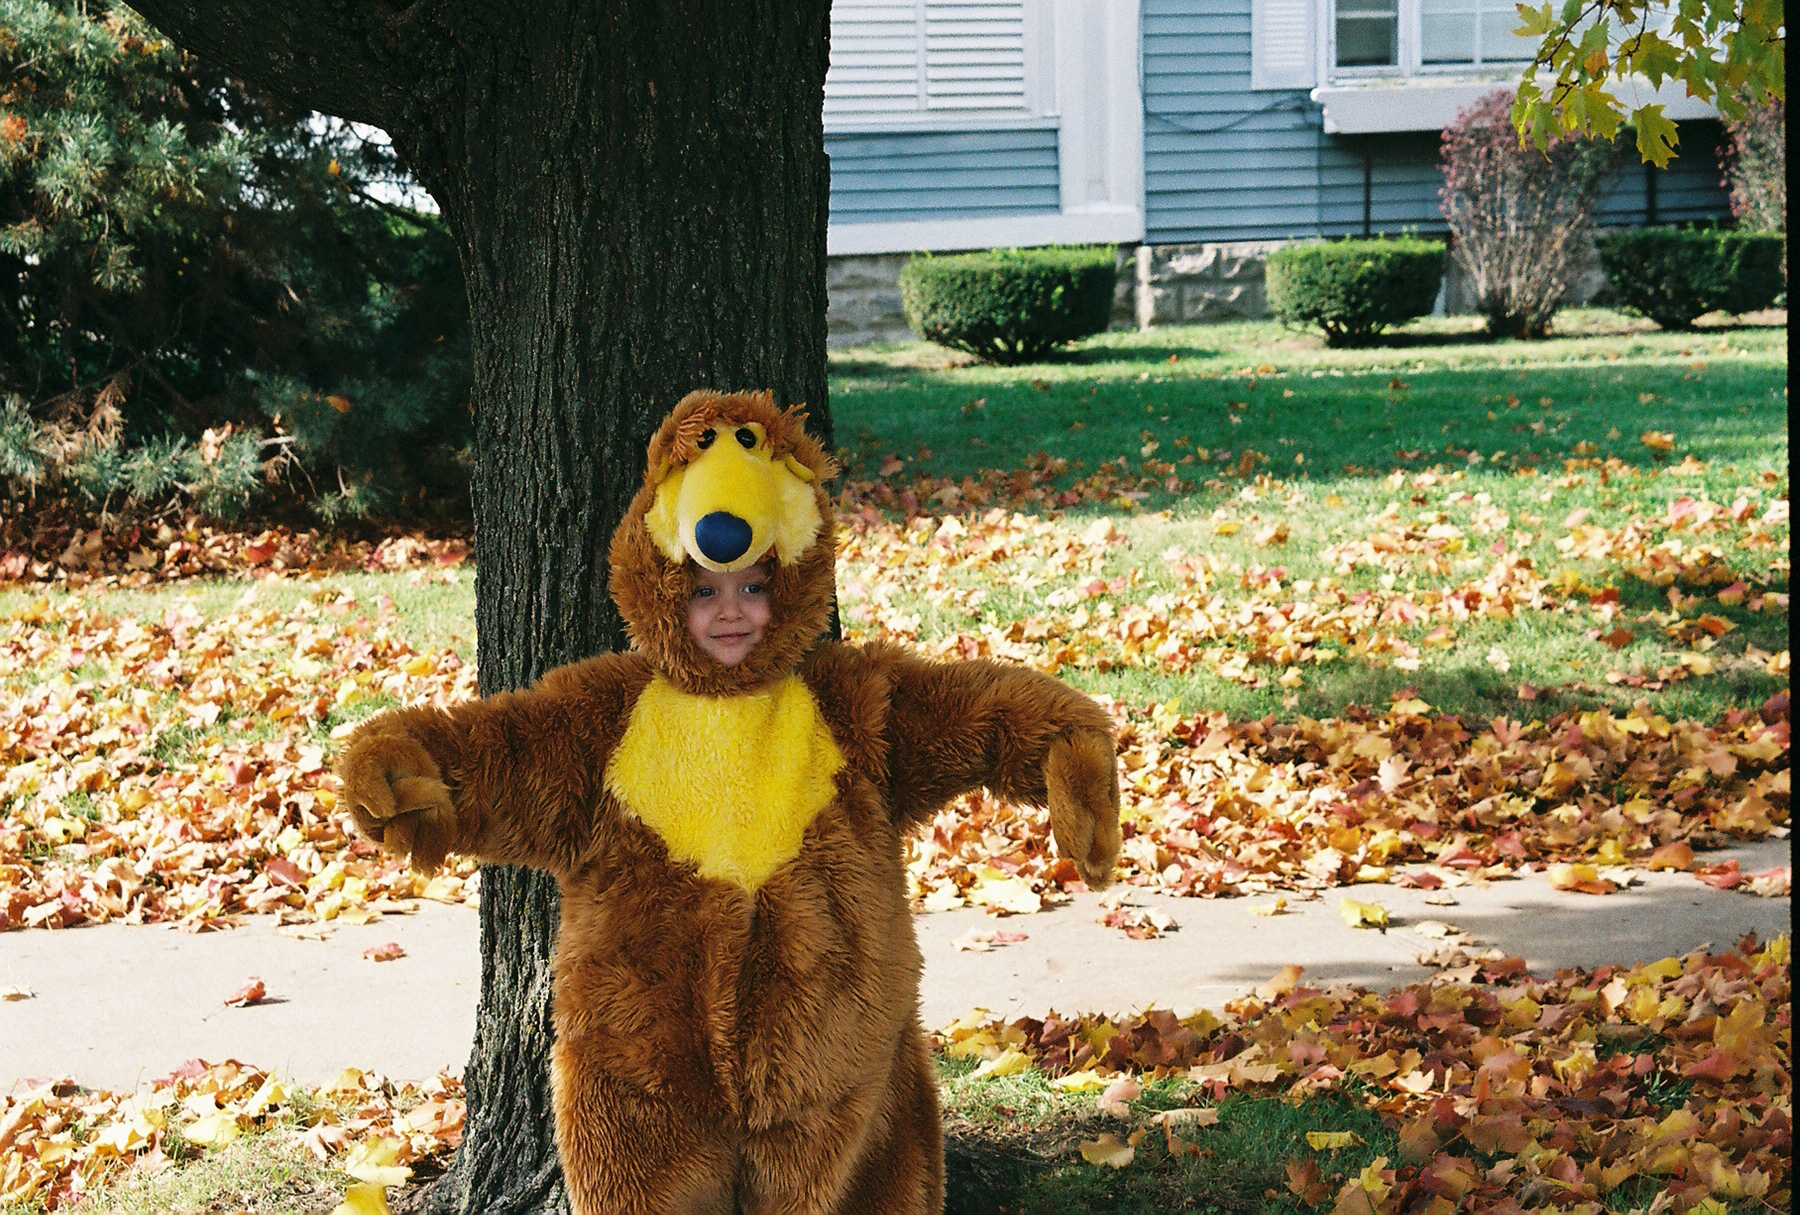 A cute bear at Halloween. I don't remember where we got this costume, but it is by far one of my favorites!